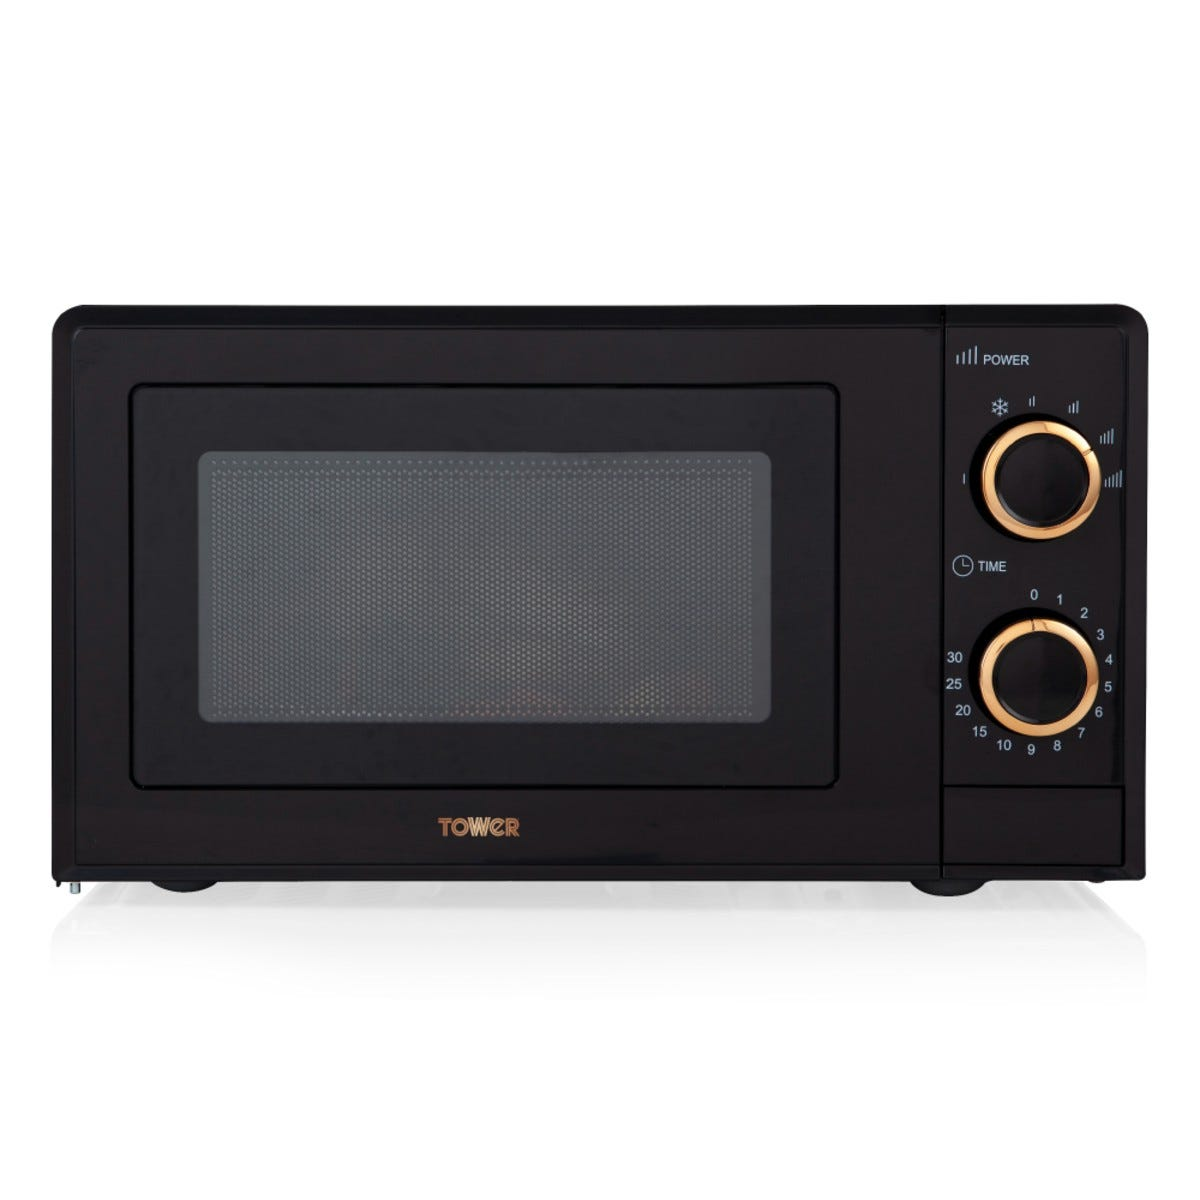 Tower T24029RG 700W 17L Manual Microwave - Black and Rose Gold